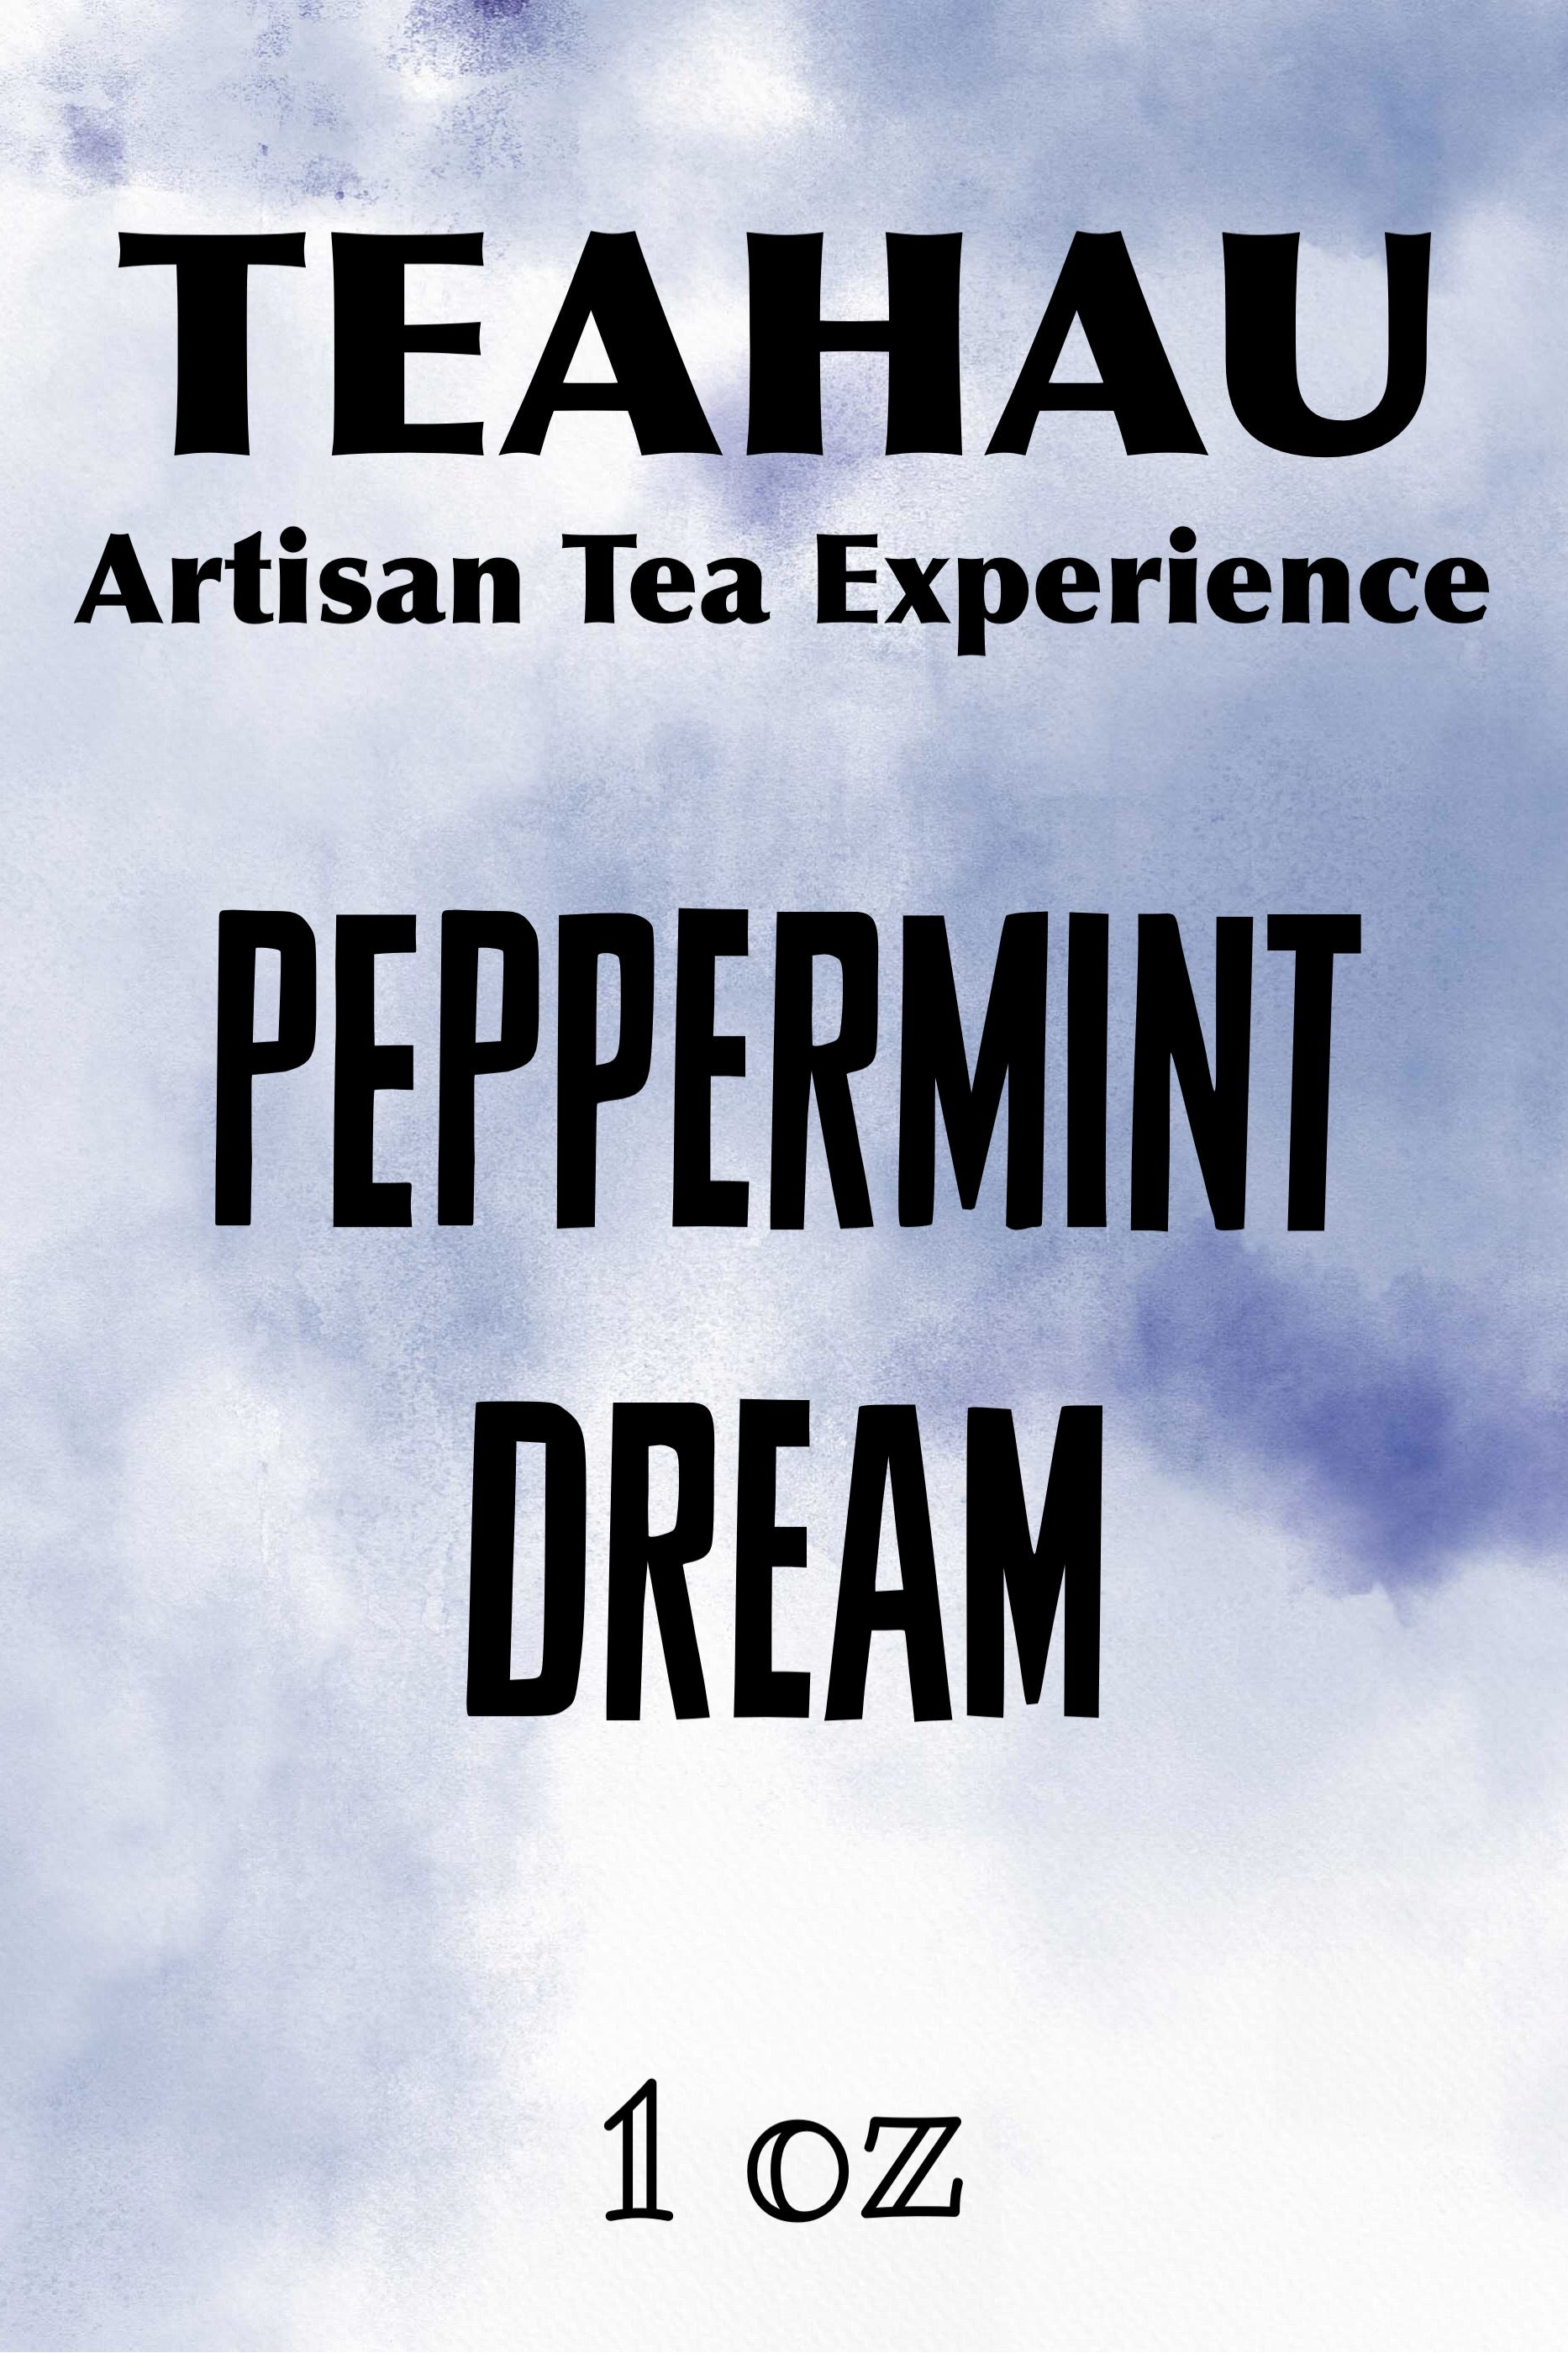 Peppermint Dream 1oz